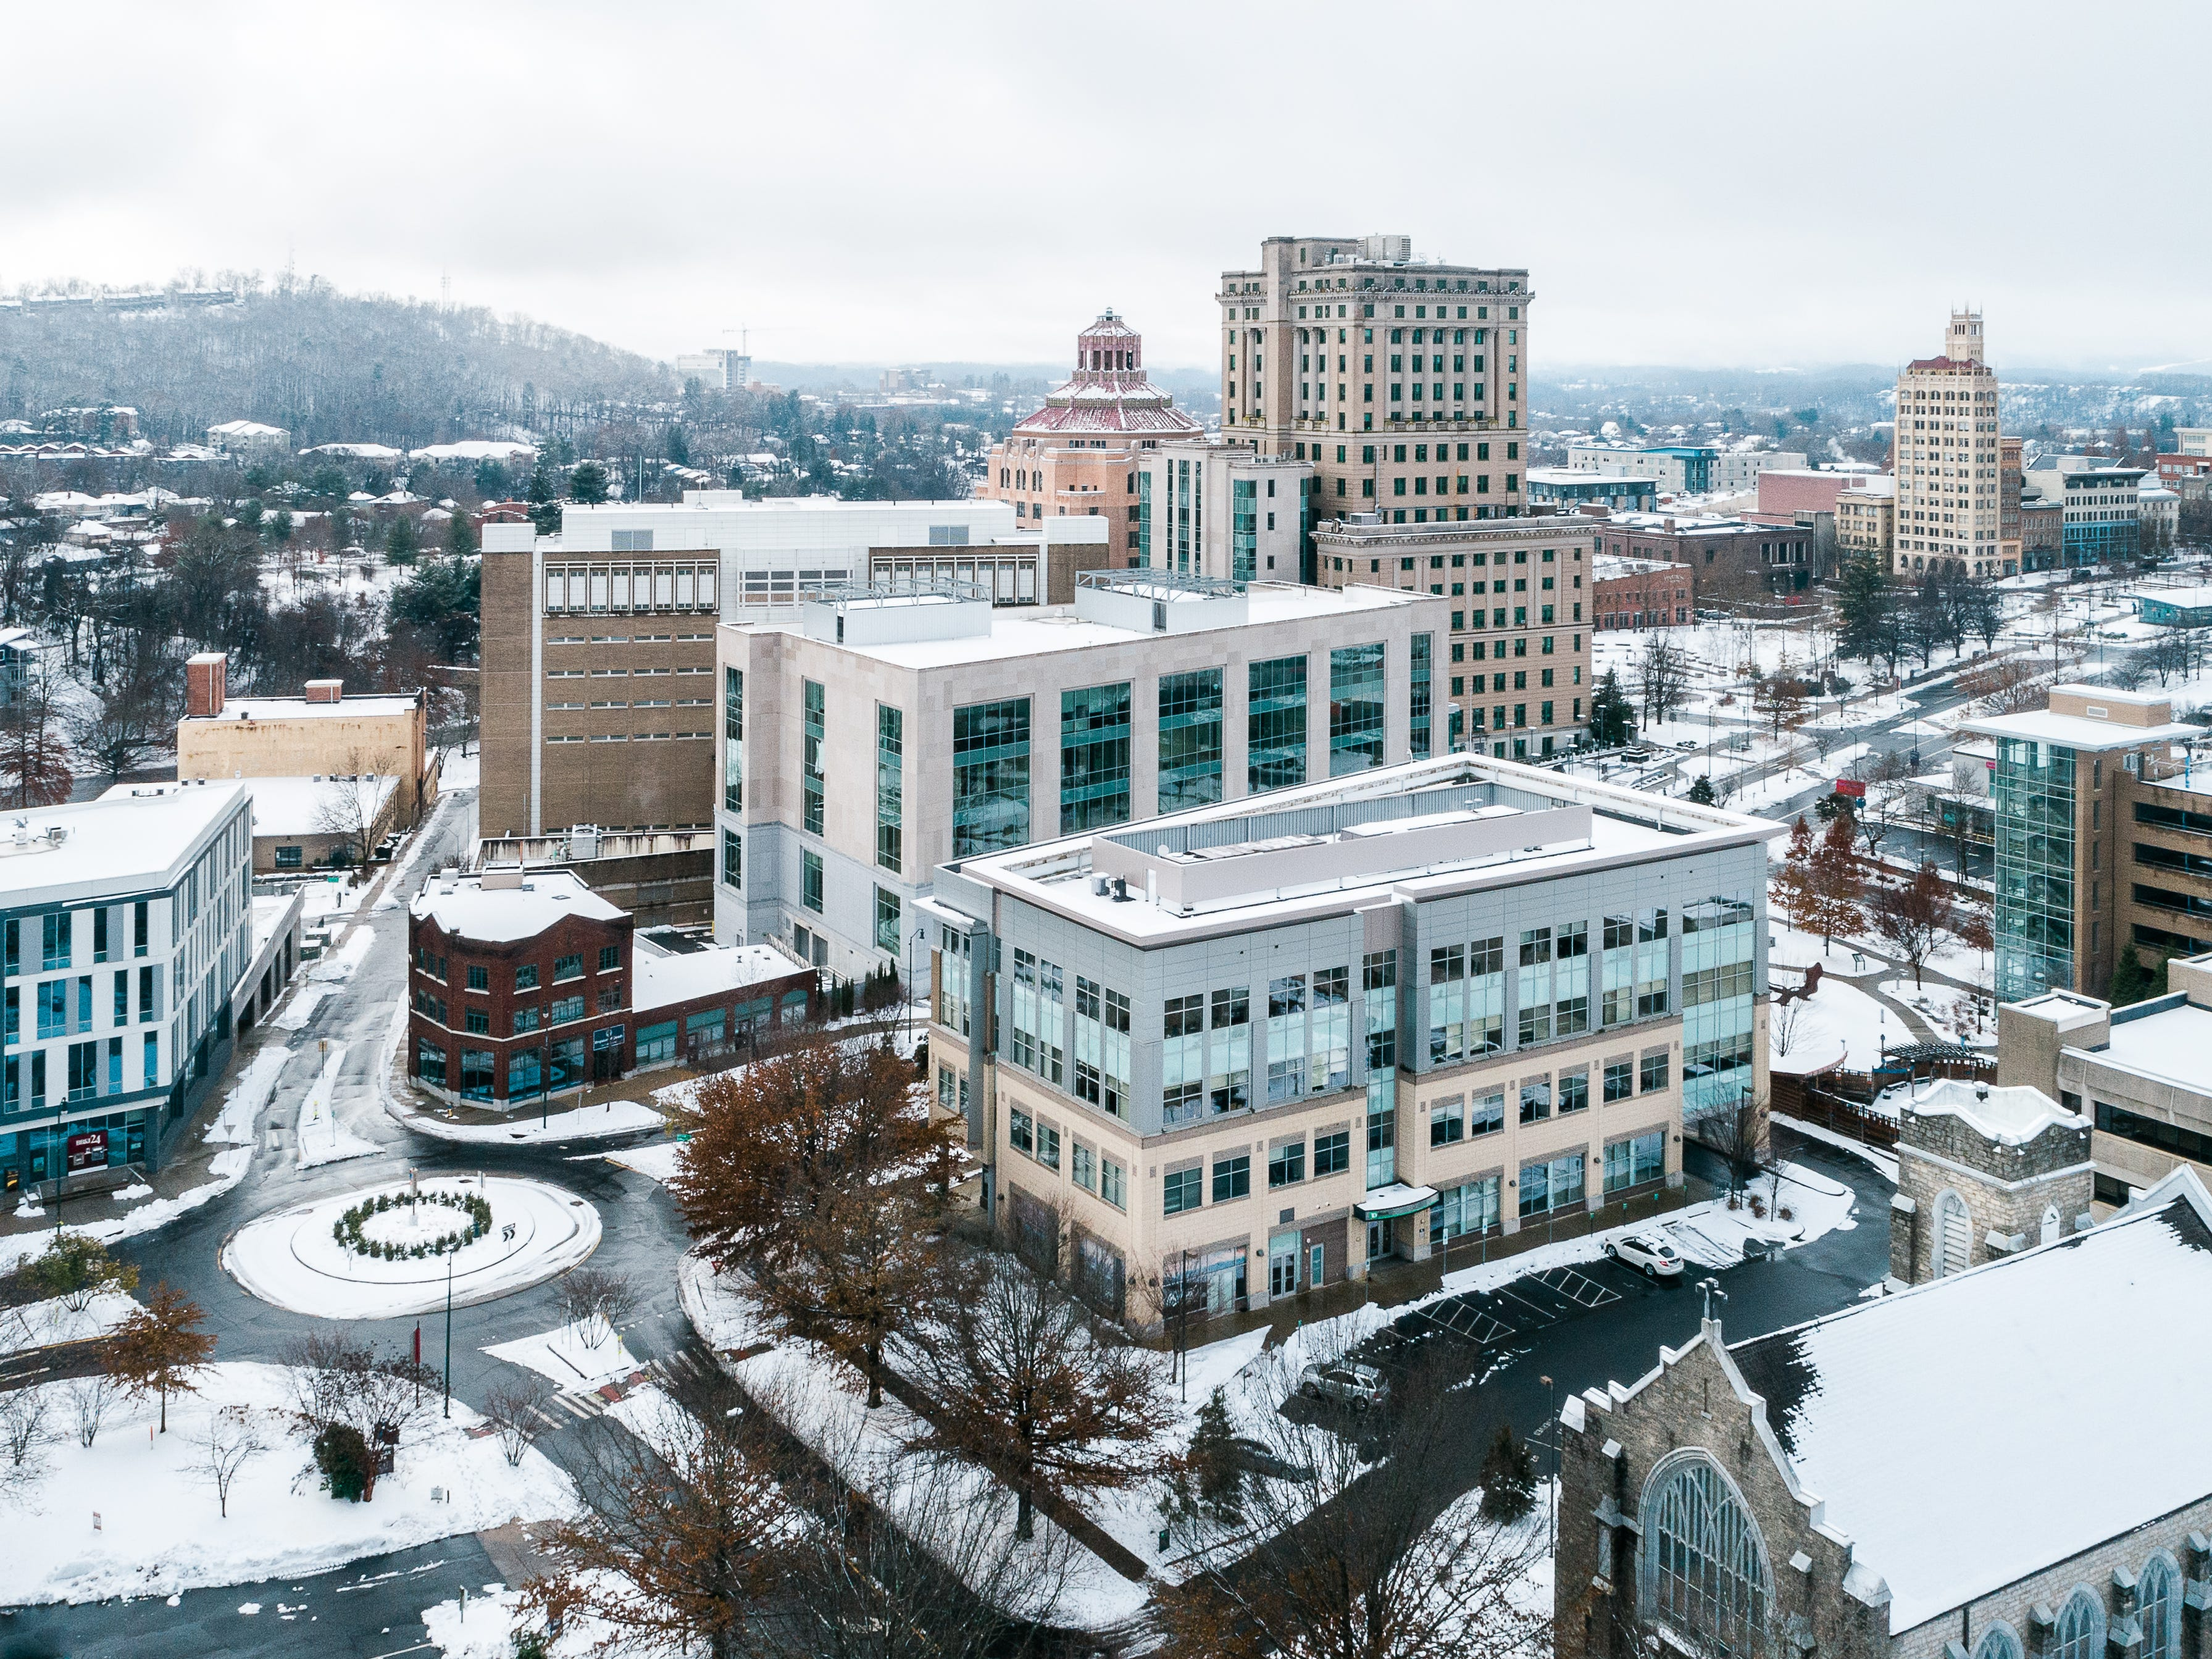 Drone footage of downtown Asheville on Monday, Dec. 10, 2018 after winter storm Diego hit the area. (Gabe Swinney, Swinney Photography)